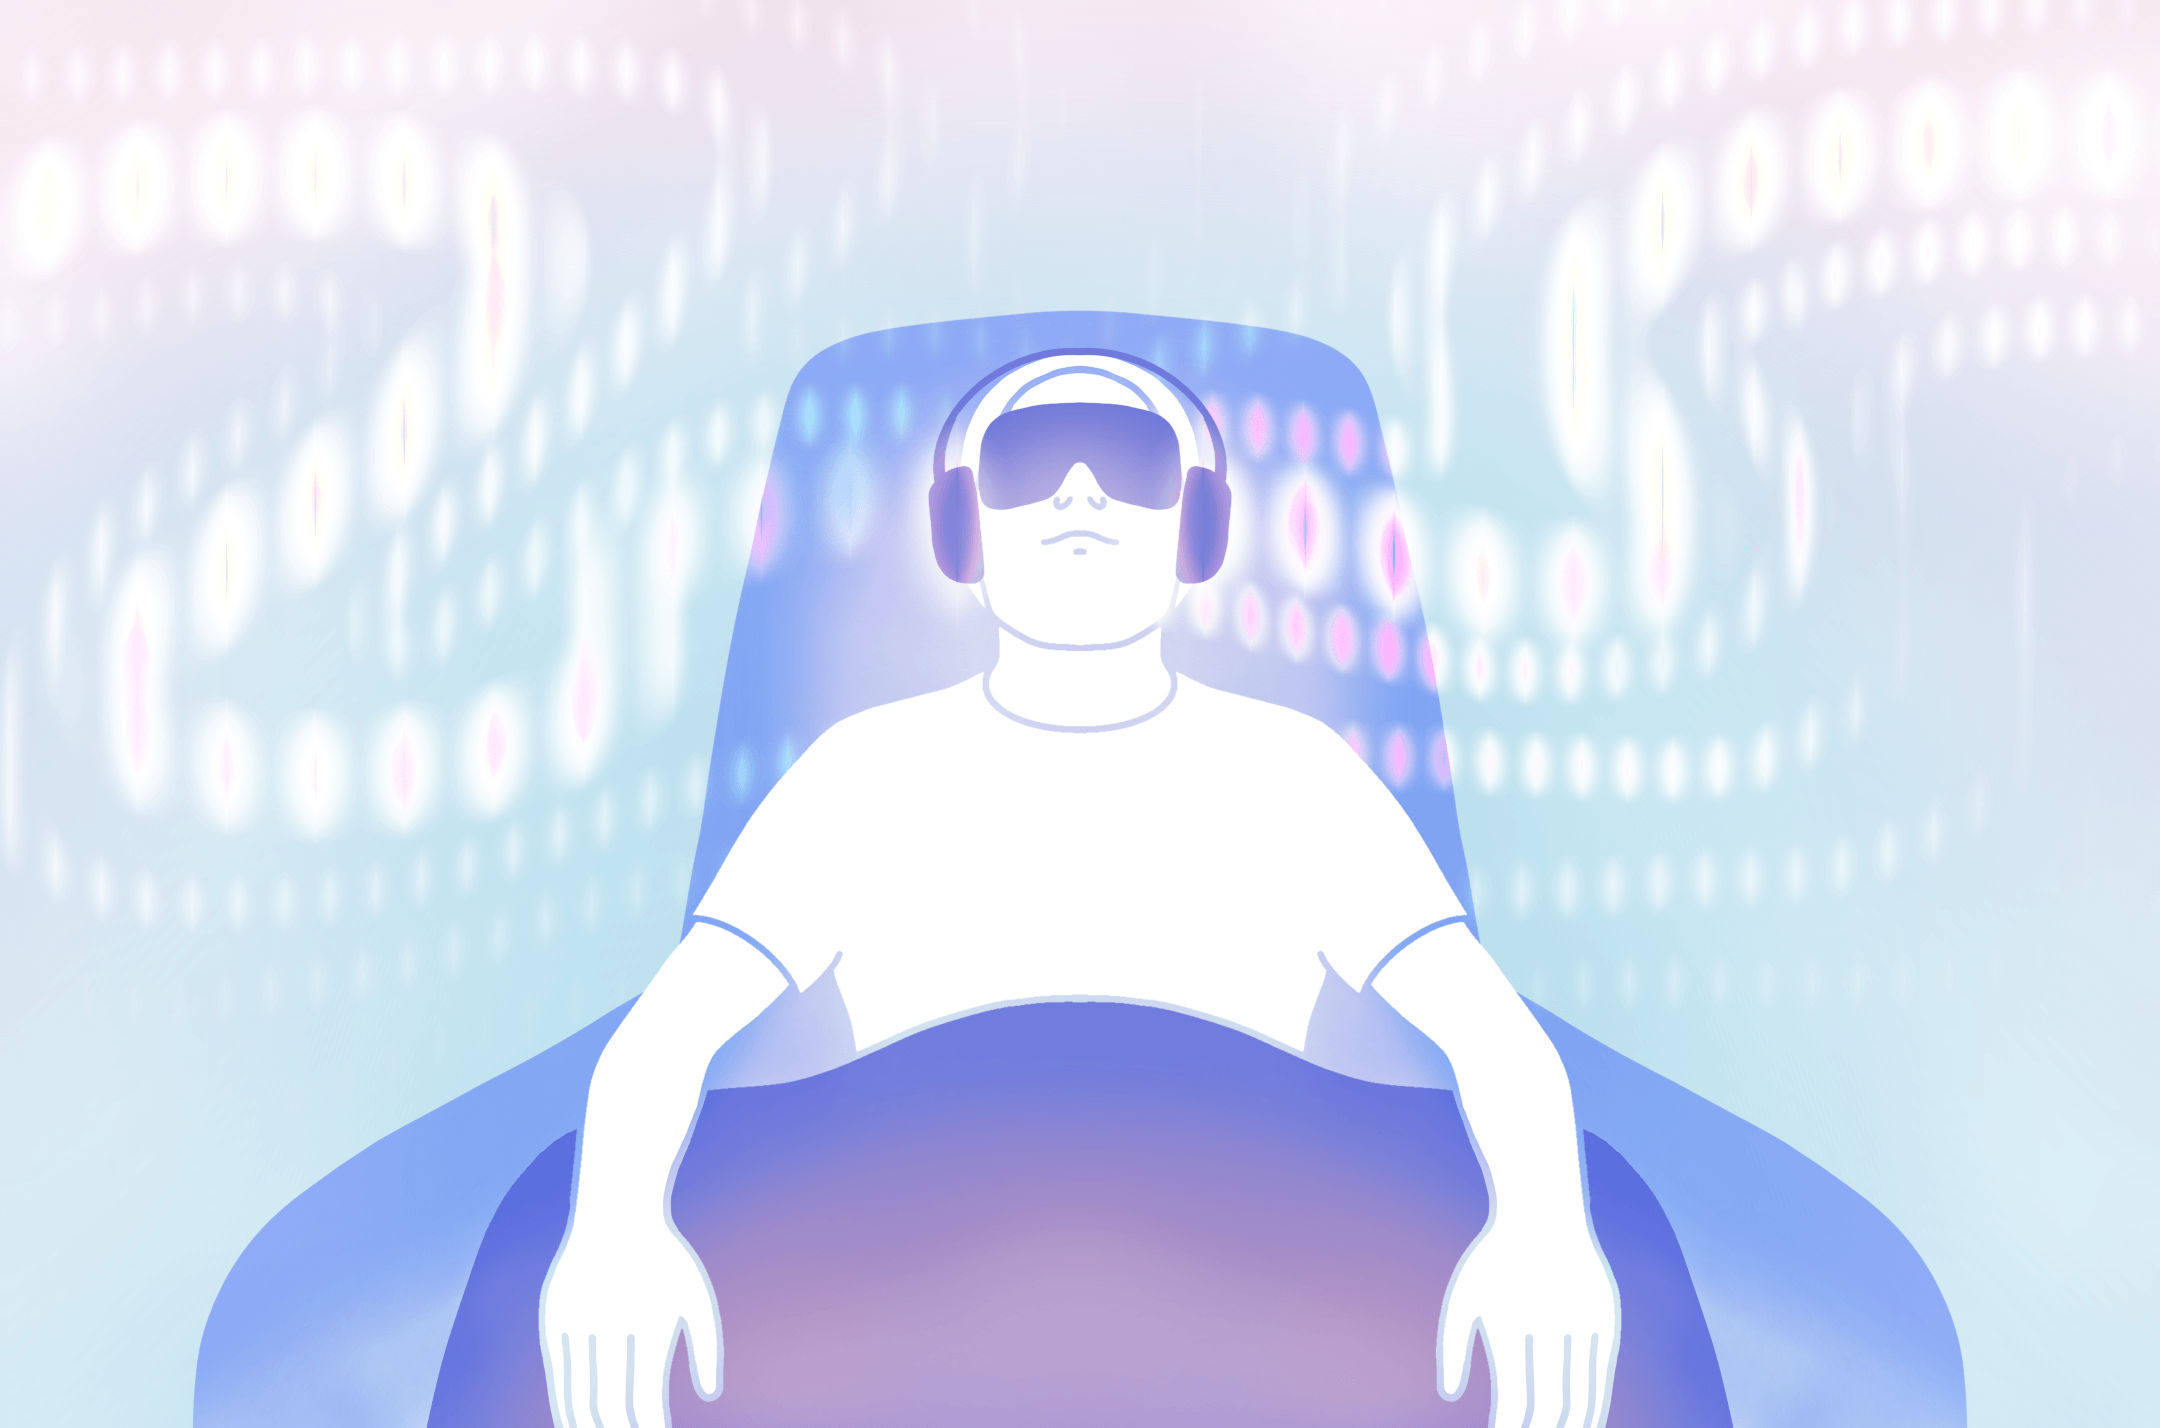 Studies show that music is helpful in psychedelic therapy. It helps patients feel better, simplify mystical experiences, and improve memory.